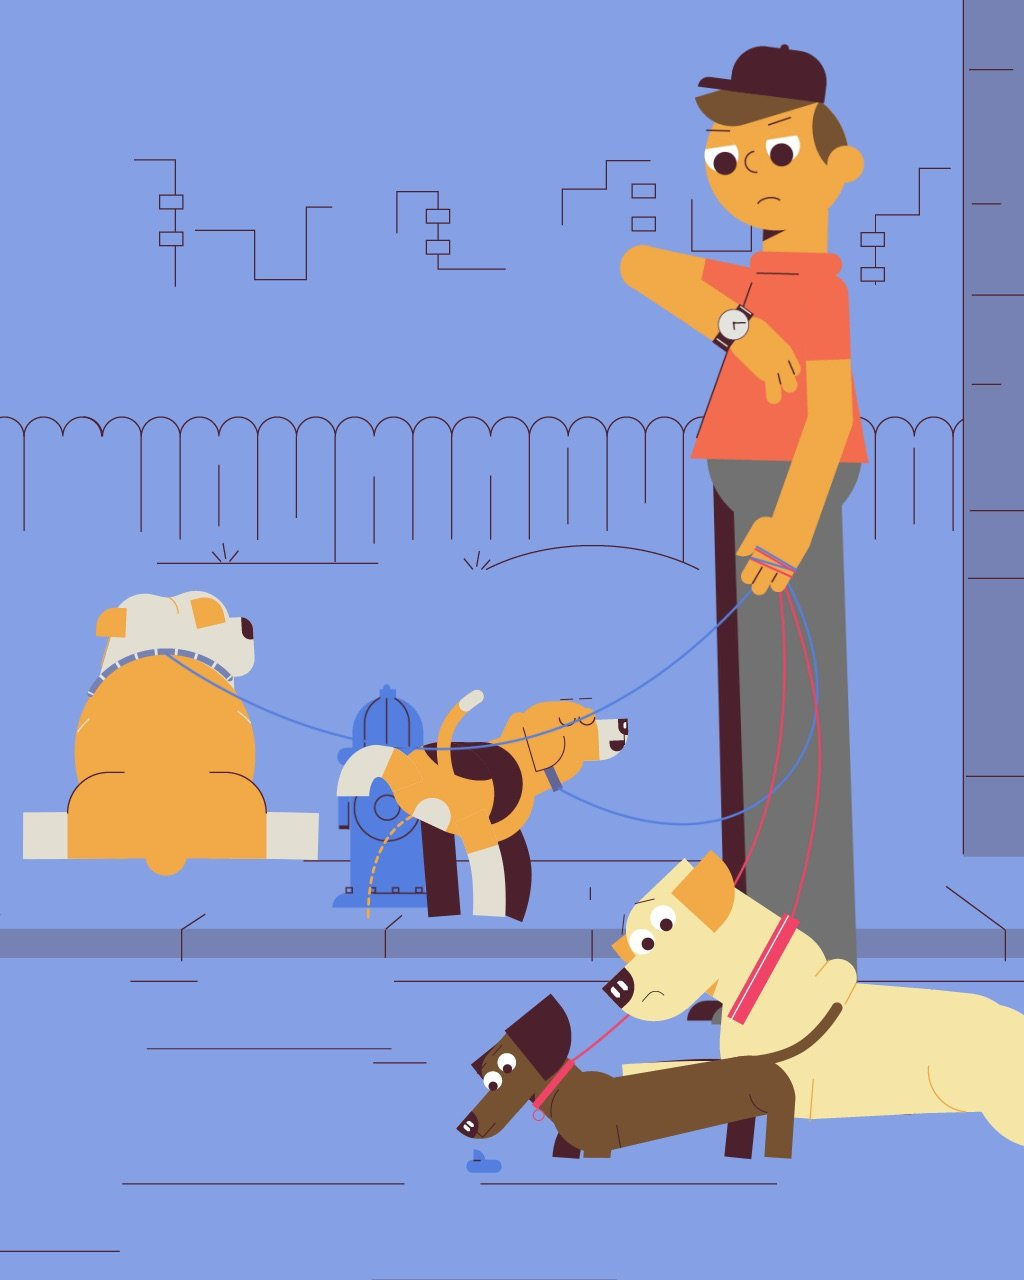 illustration for an explainer video animation made for Wag, a dog walking service. It shows a dog walker struggling to walk his dog